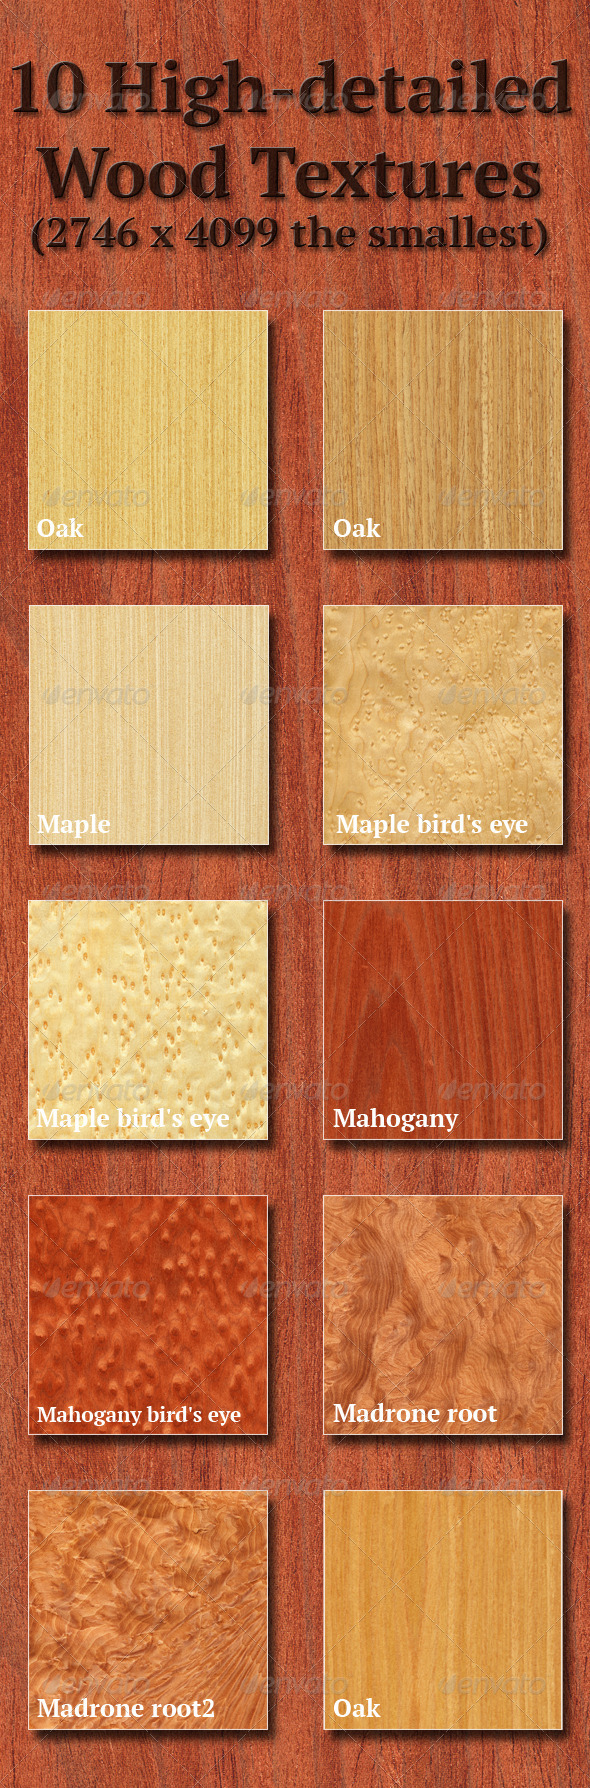 High-Detailed Wood Textures Set 3 - Wood Textures